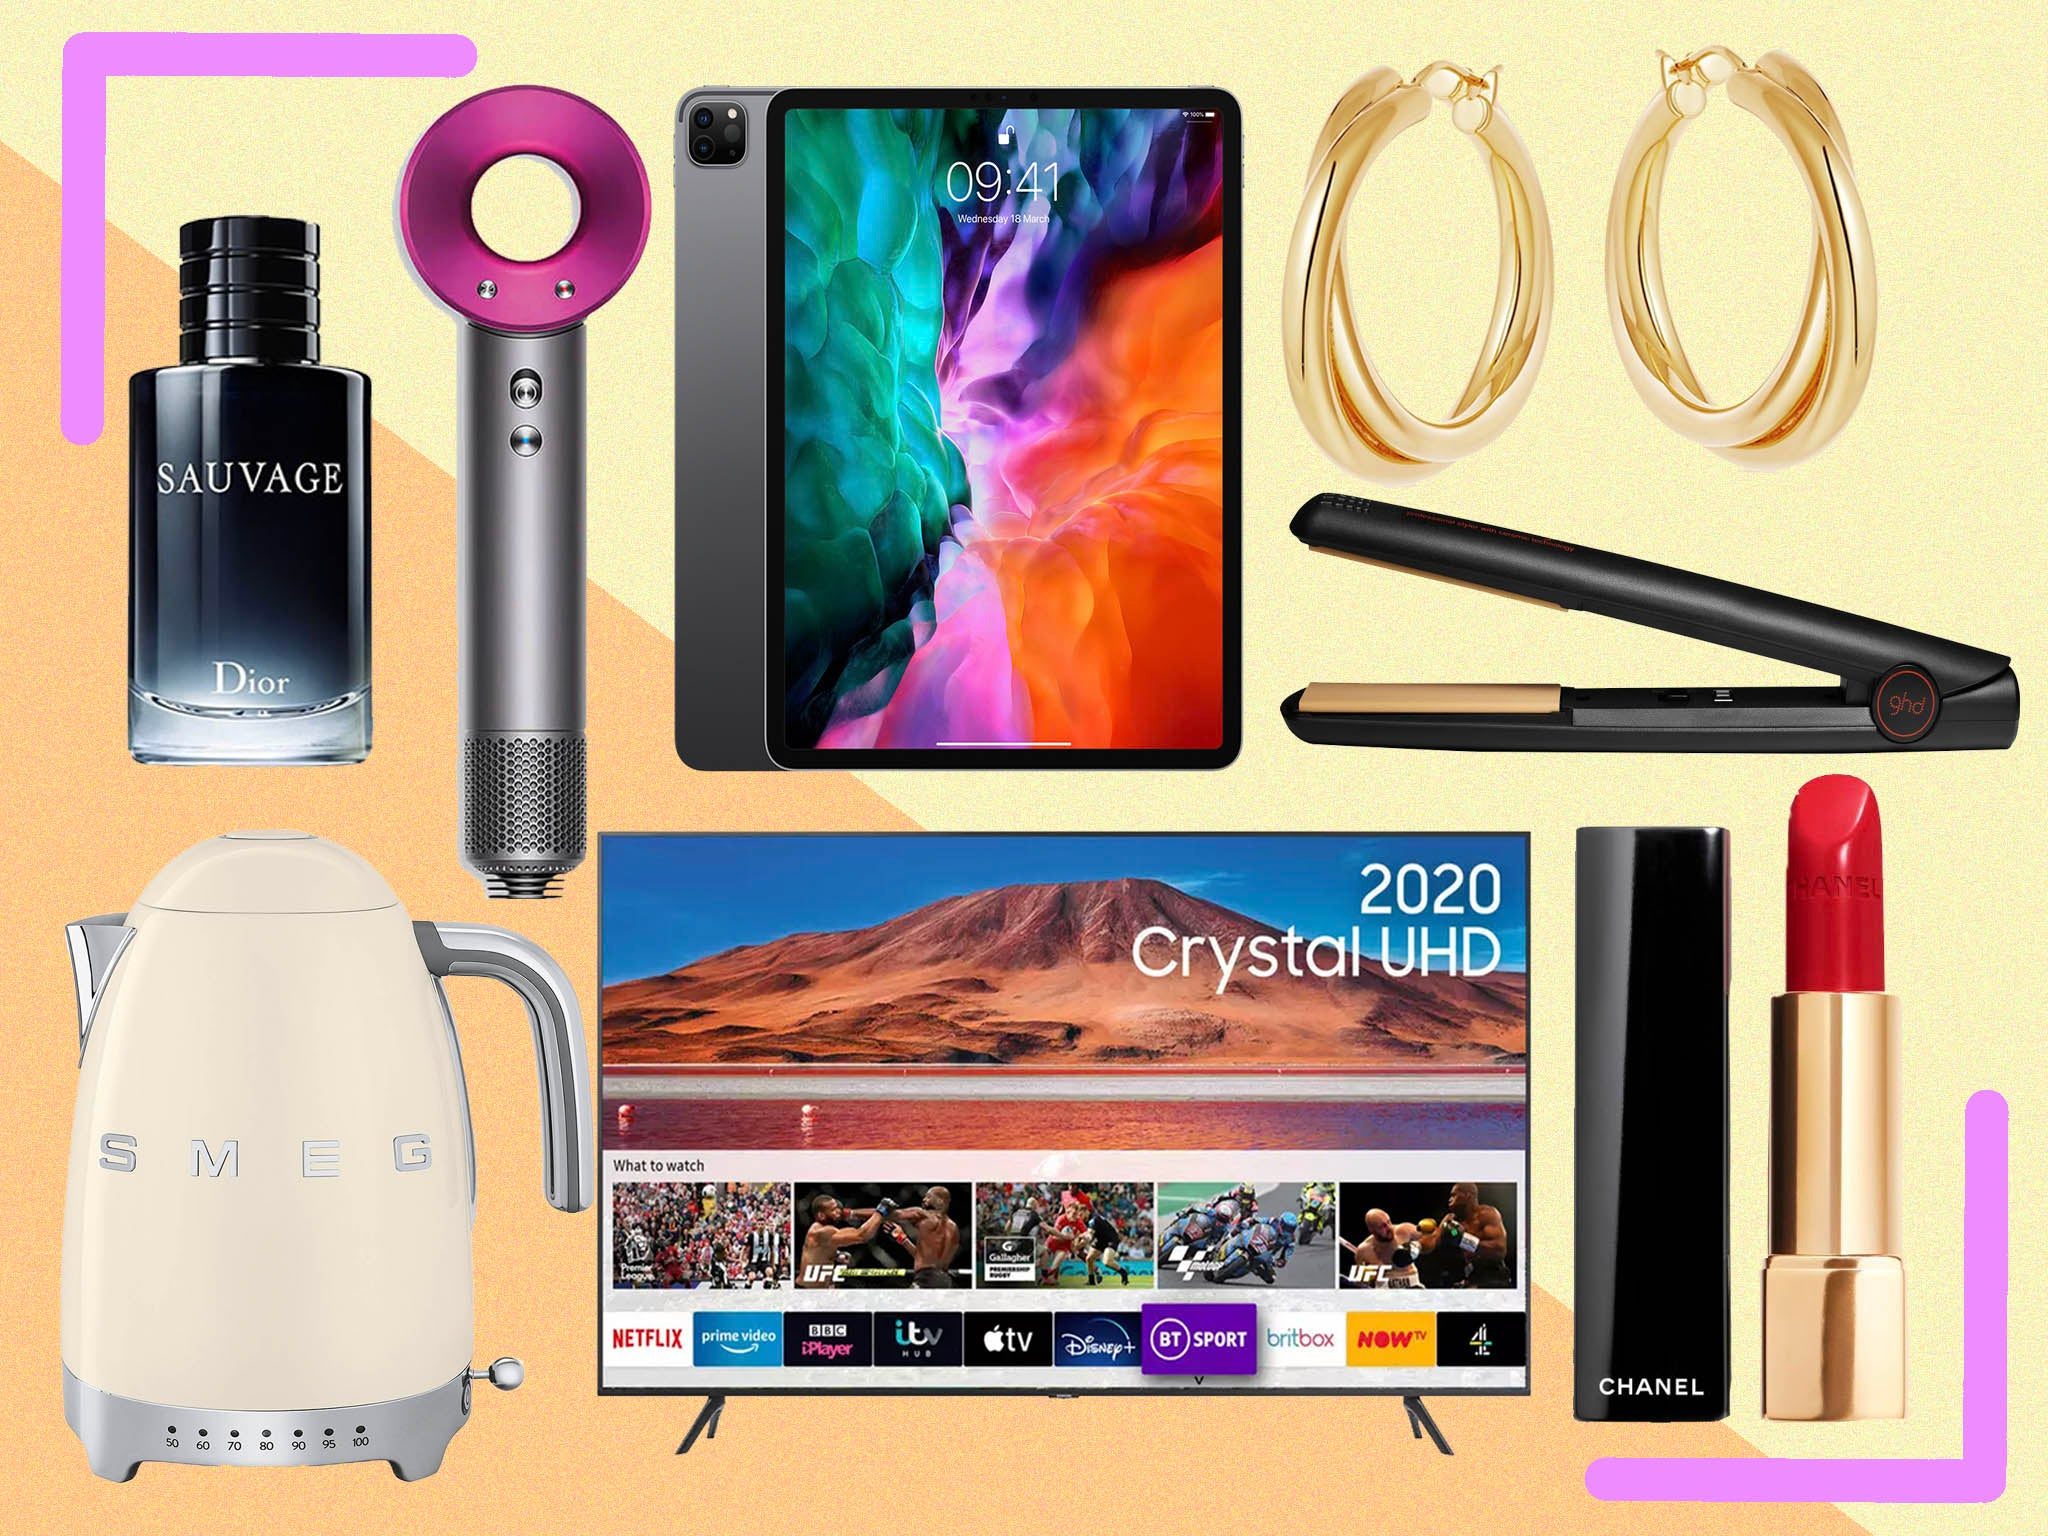 Cyber Monday Deals 2020 Samsung Pandora Nintendo And More The Independent